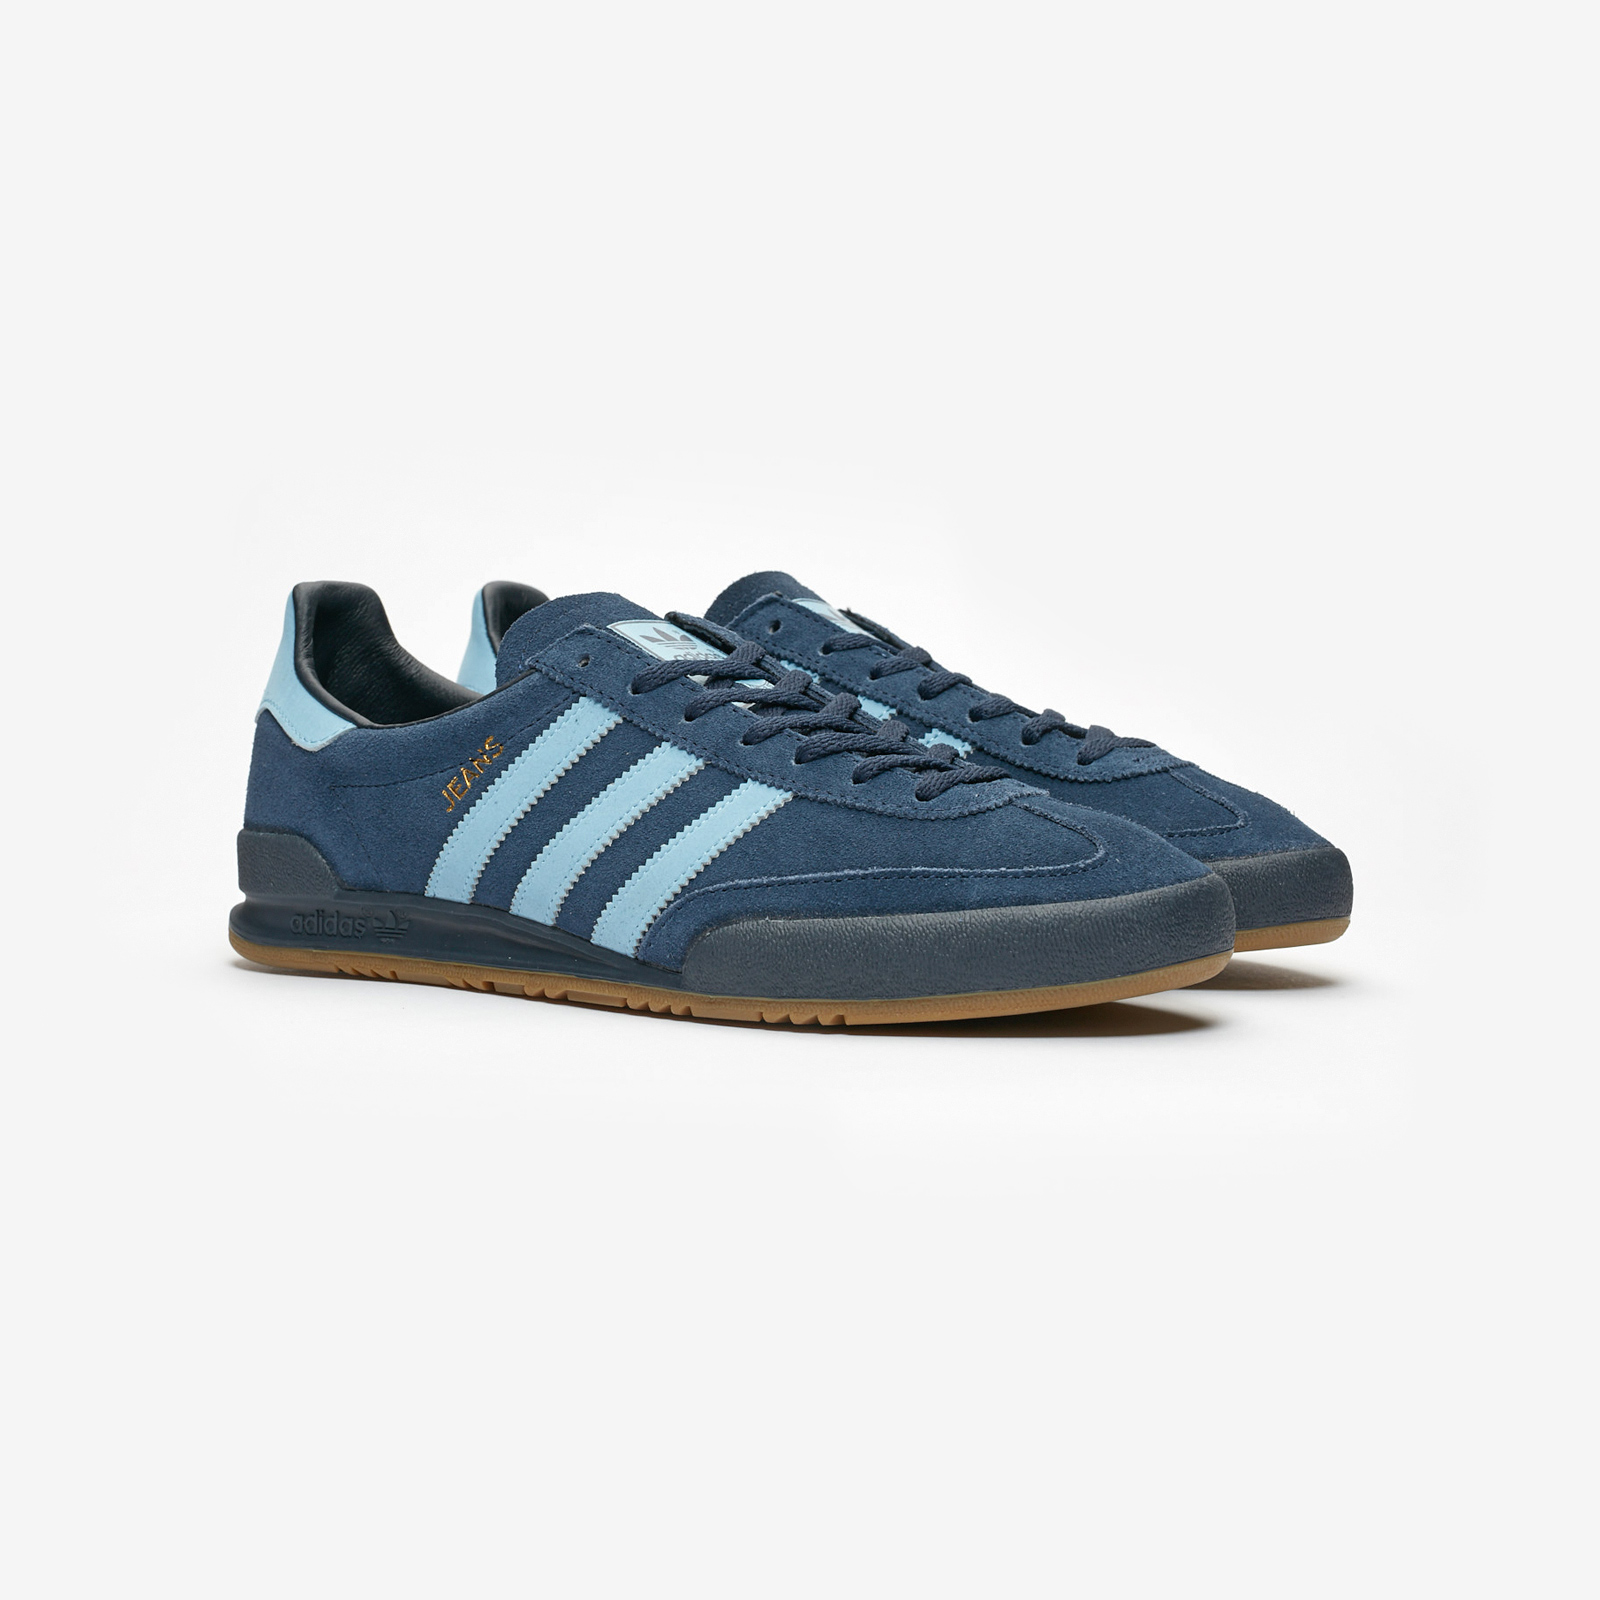 adidas originals Jeans Shoes Streetwear